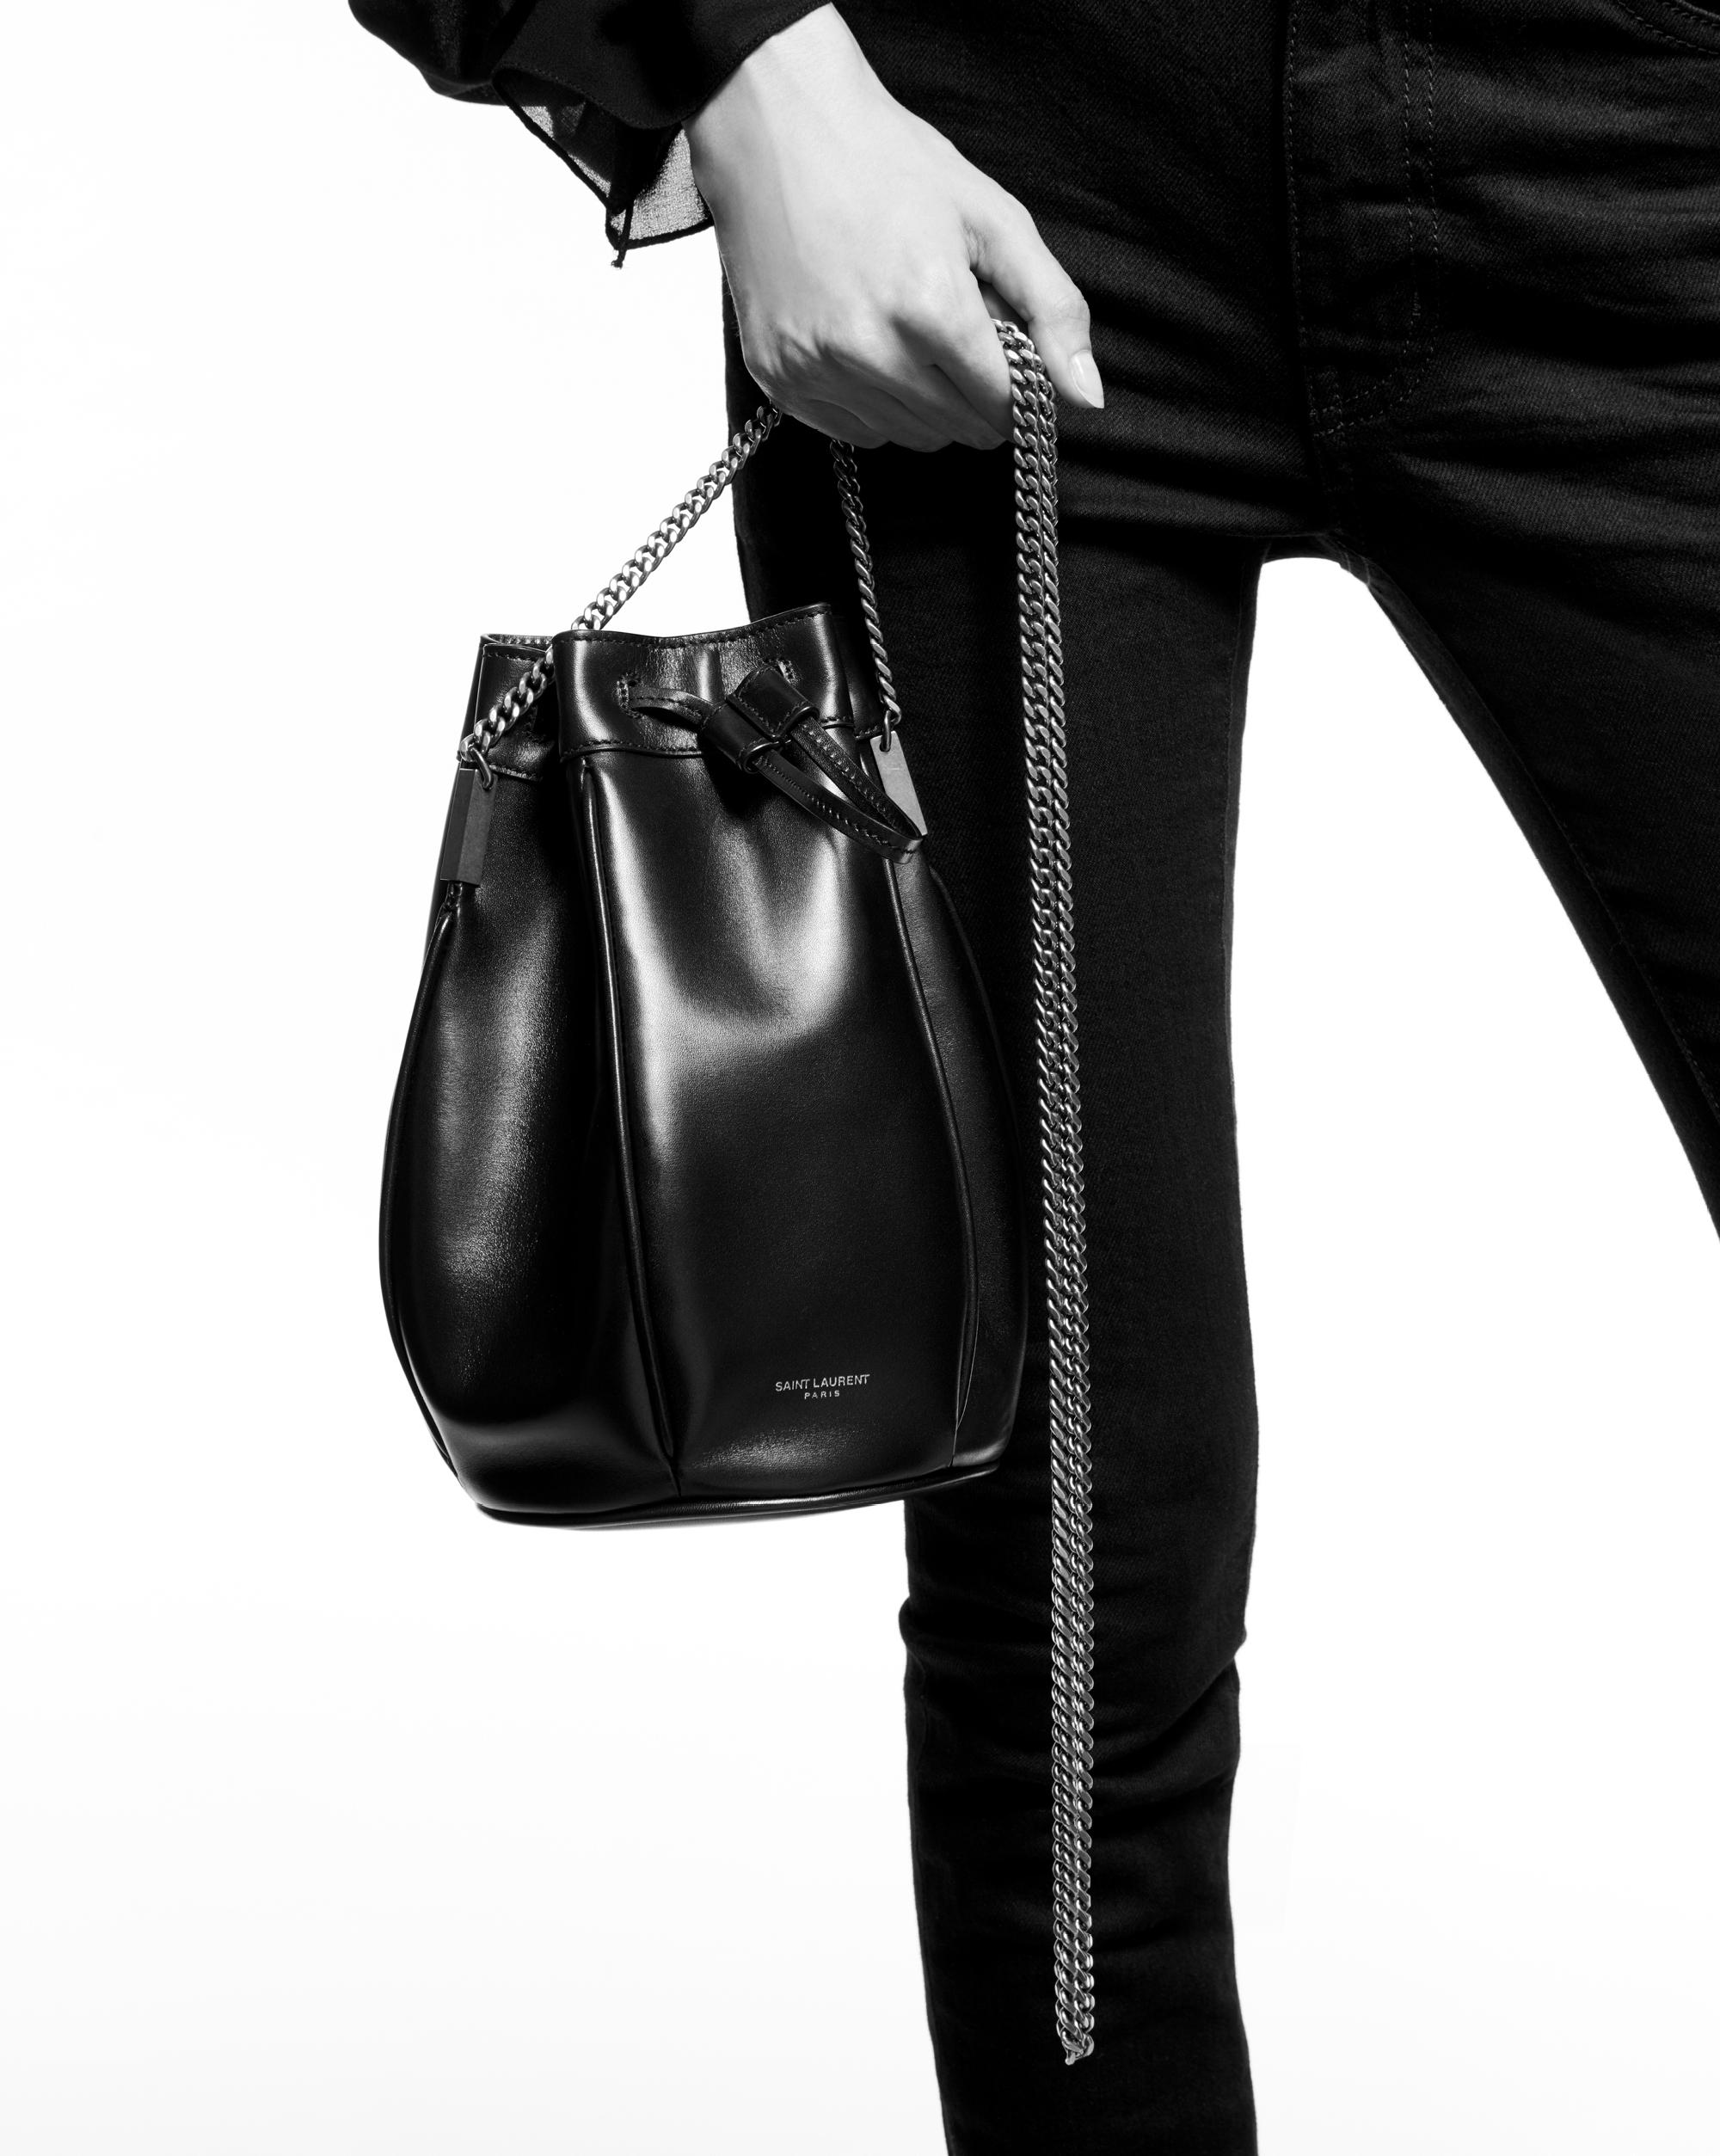 225437afcd87 Lyst - Saint Laurent Talitha Small Bucket Bag in Black